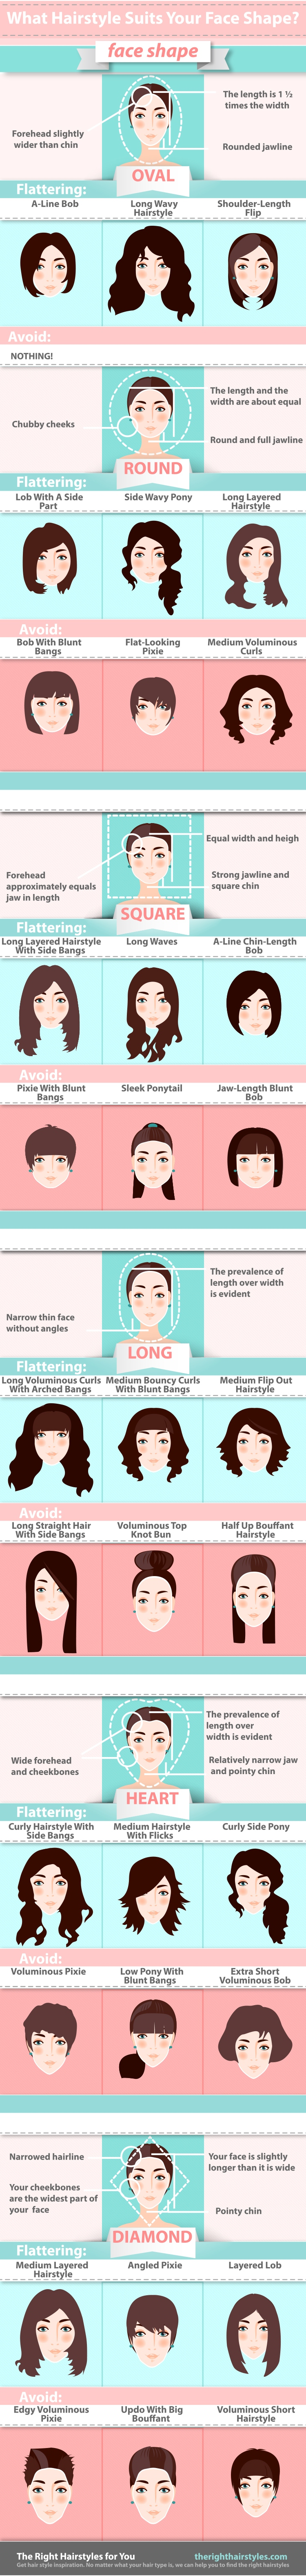 How To Choose A Haircut And Hairstyle According To Your Face Shape